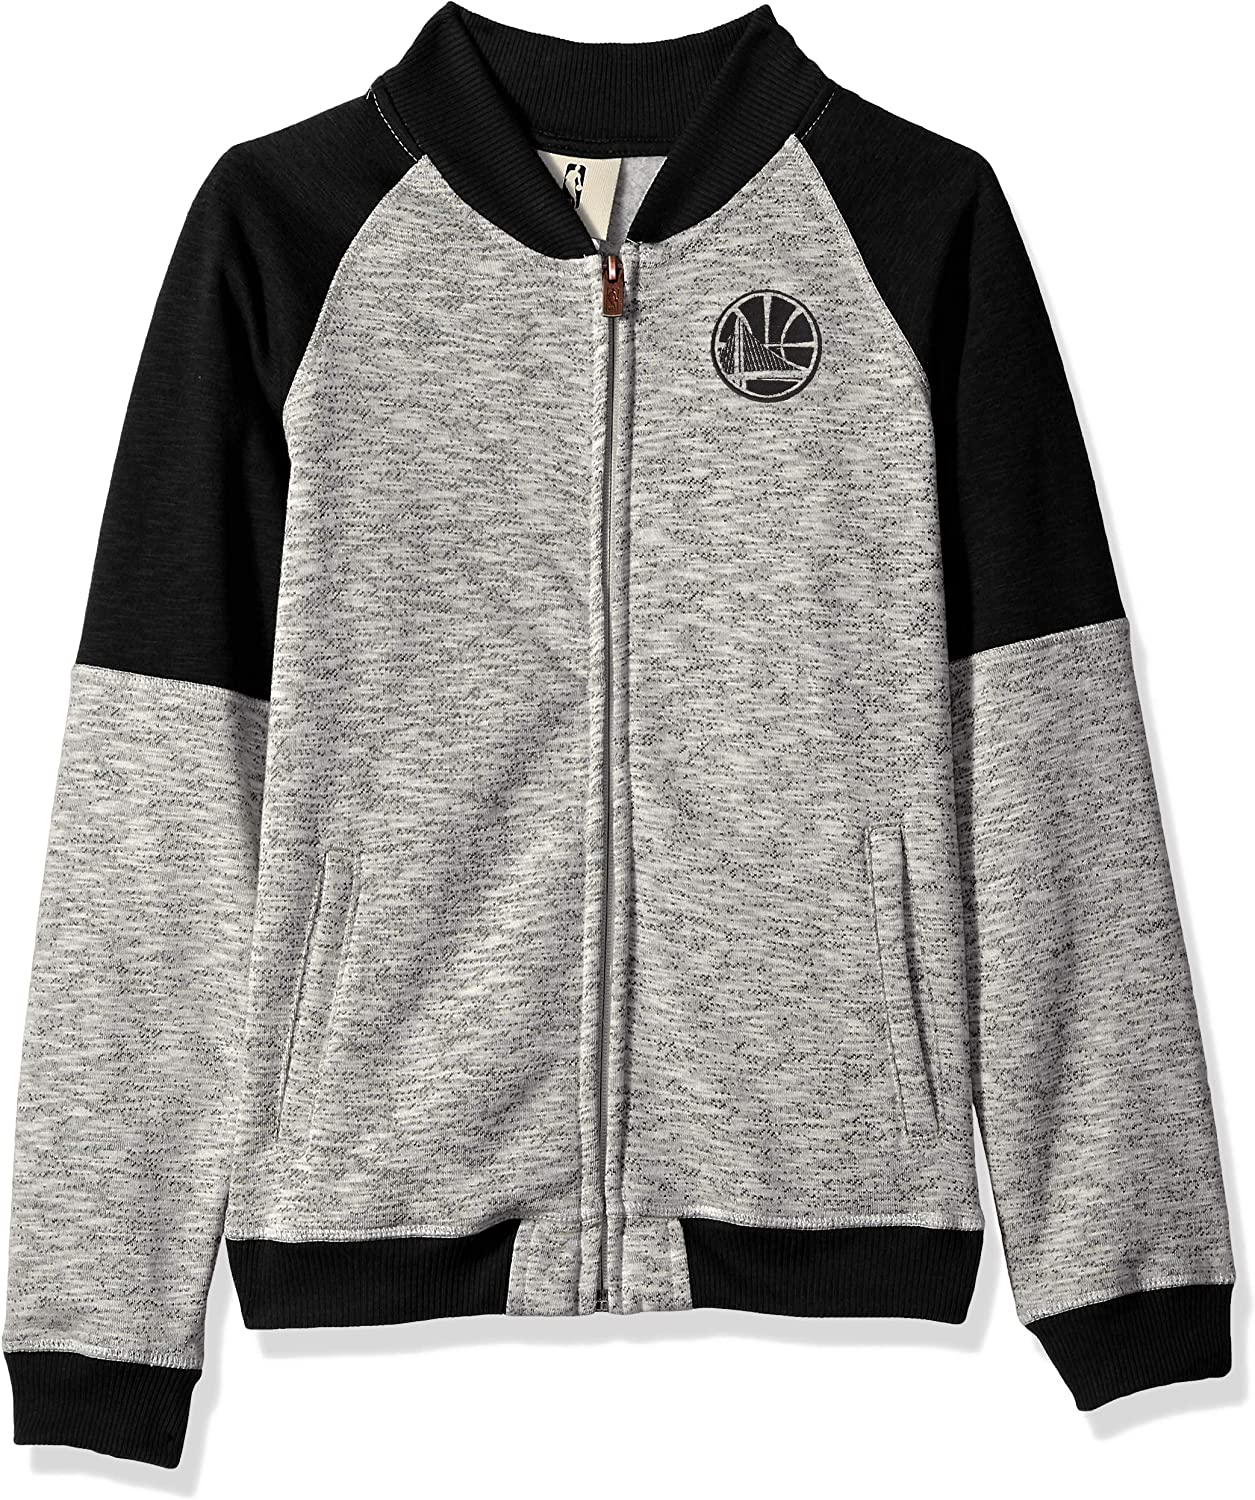 NBA by Outerstuff NBA Youth Boys Golden State Warriors Game Changer Full Zip Jacket Heather Grey Youth Medium 10-12